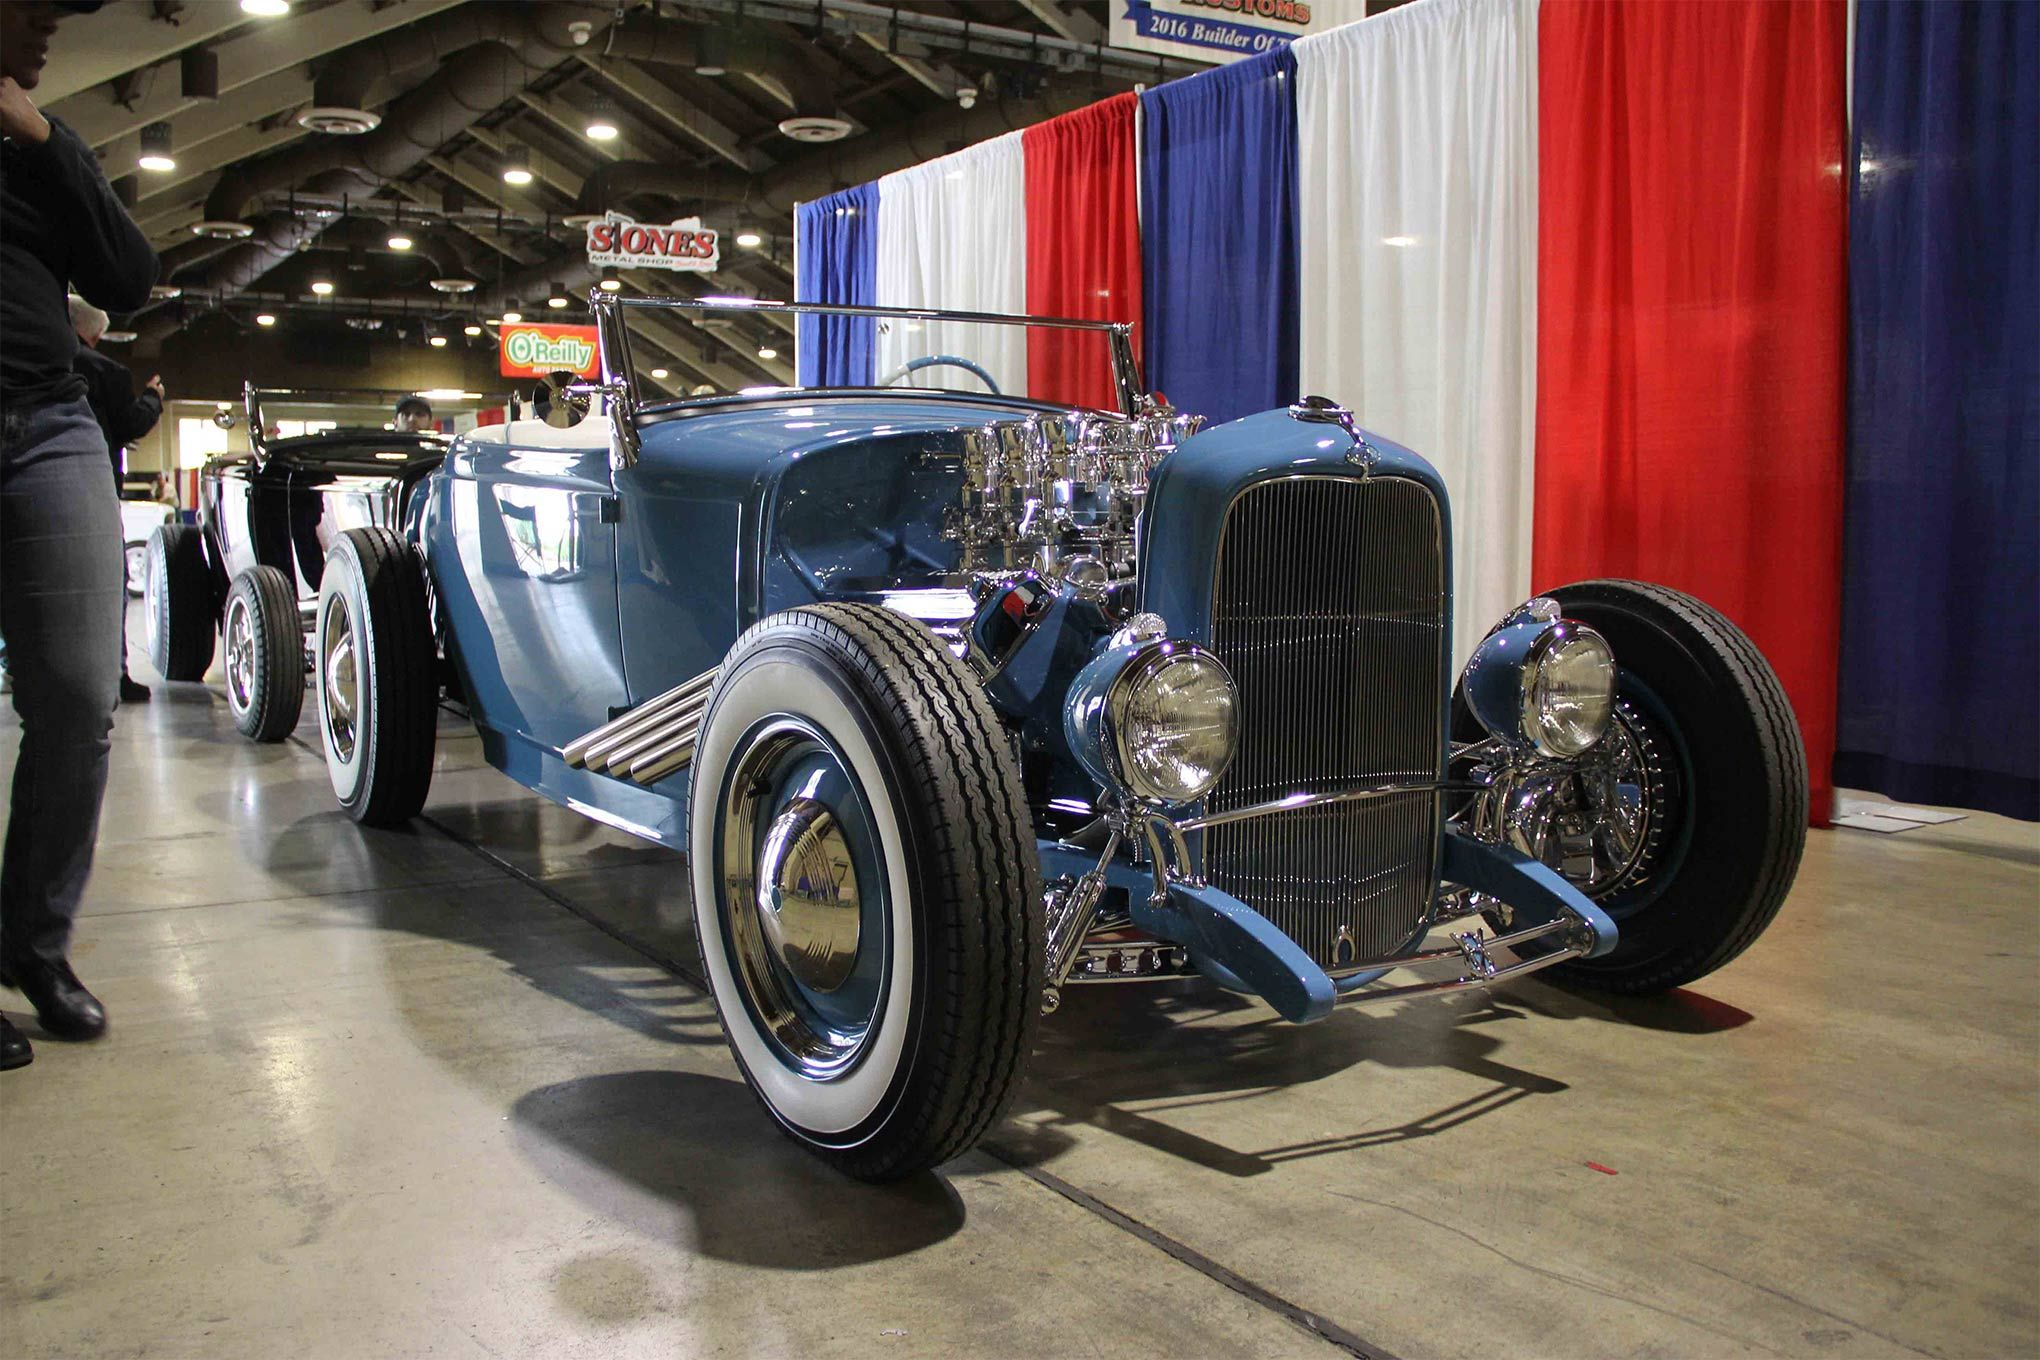 2016 Ford roadster photo - 2